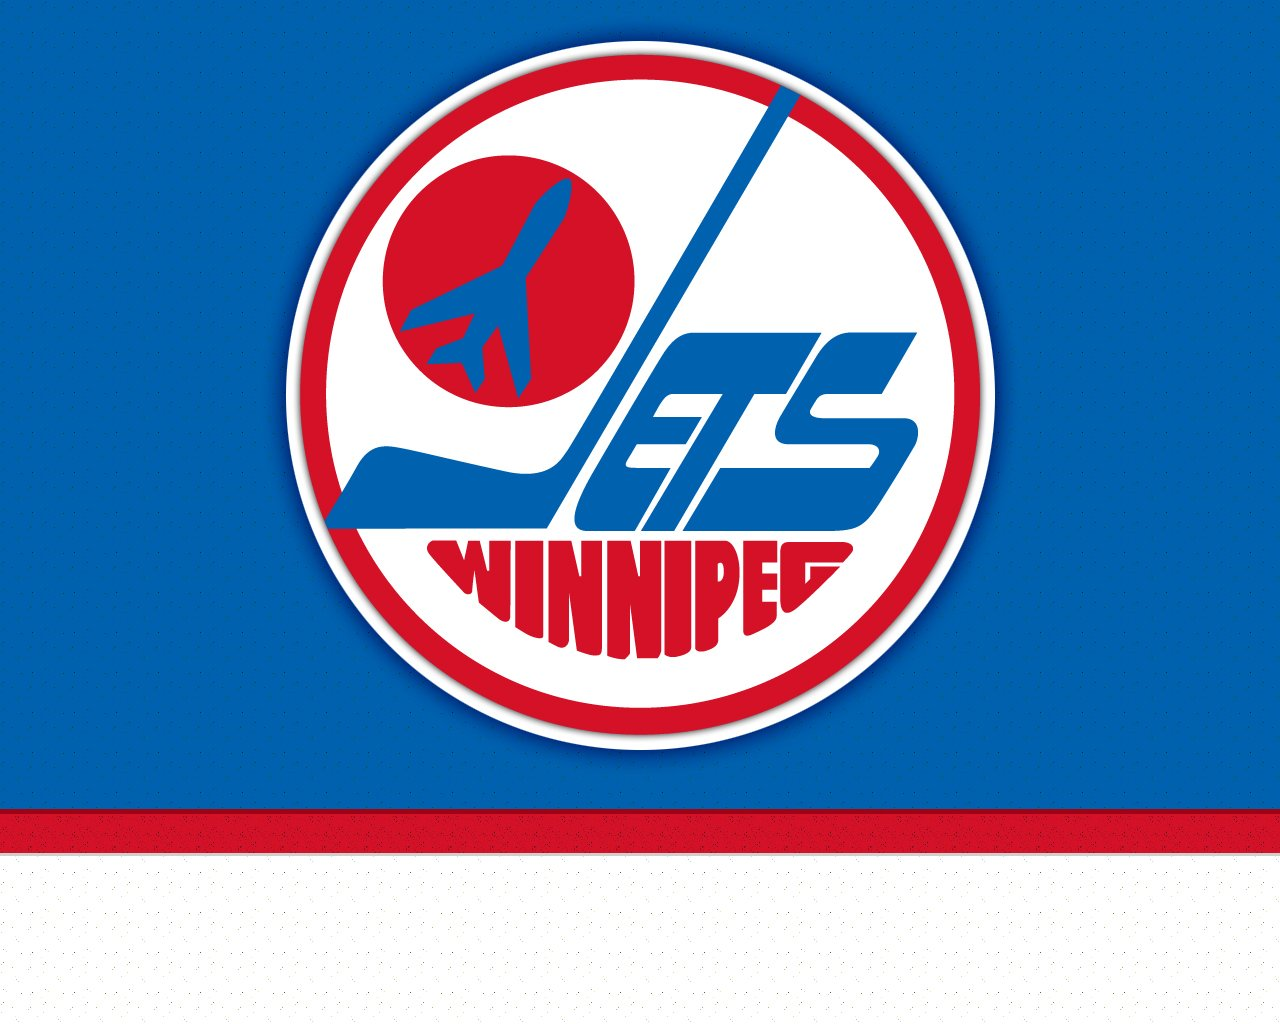 Winnipeg Jets Wallpapers Desktop 1280x1024 px   4USkY 1280x1024